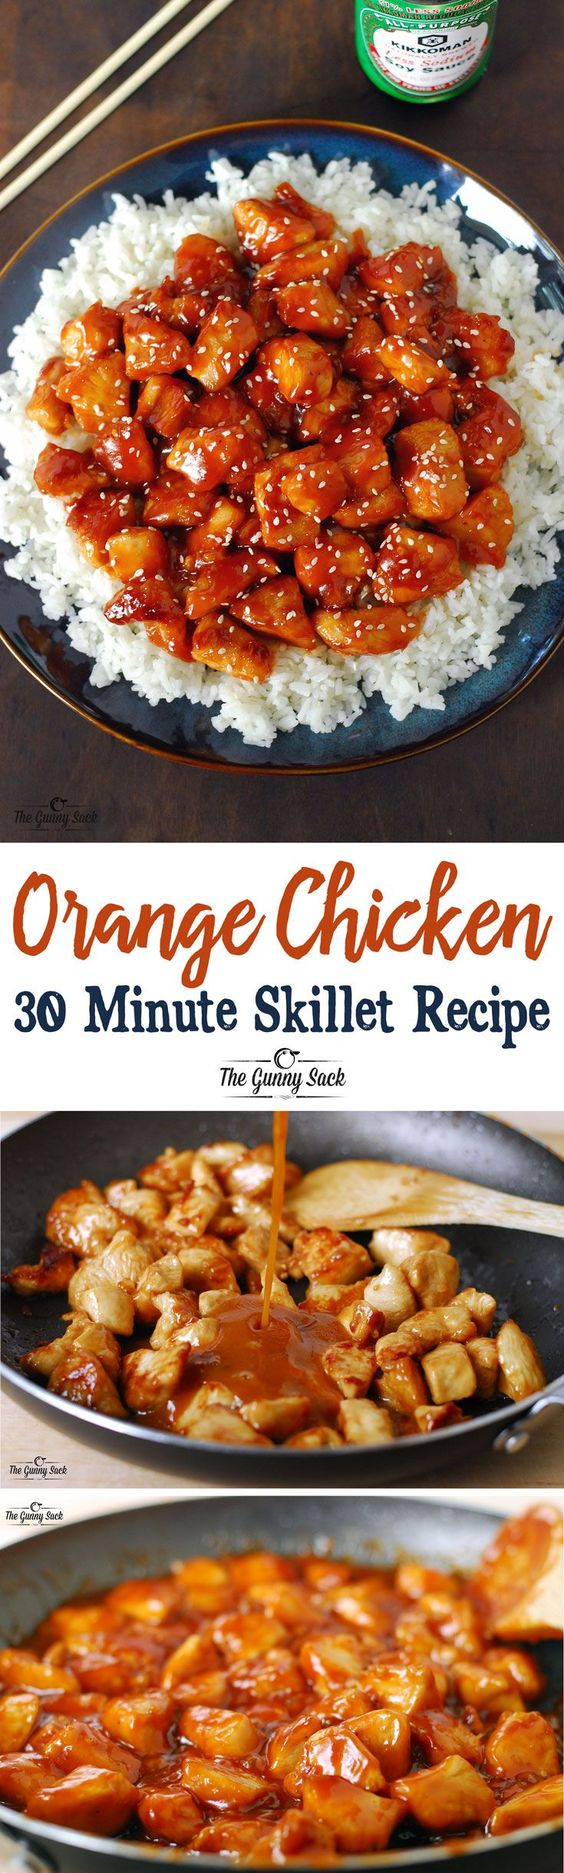 The best 30 minute meals recipes easy quick and delicious family orange chicken 30 minute skillet recipe via the gunny sack an easy dinner idea that forumfinder